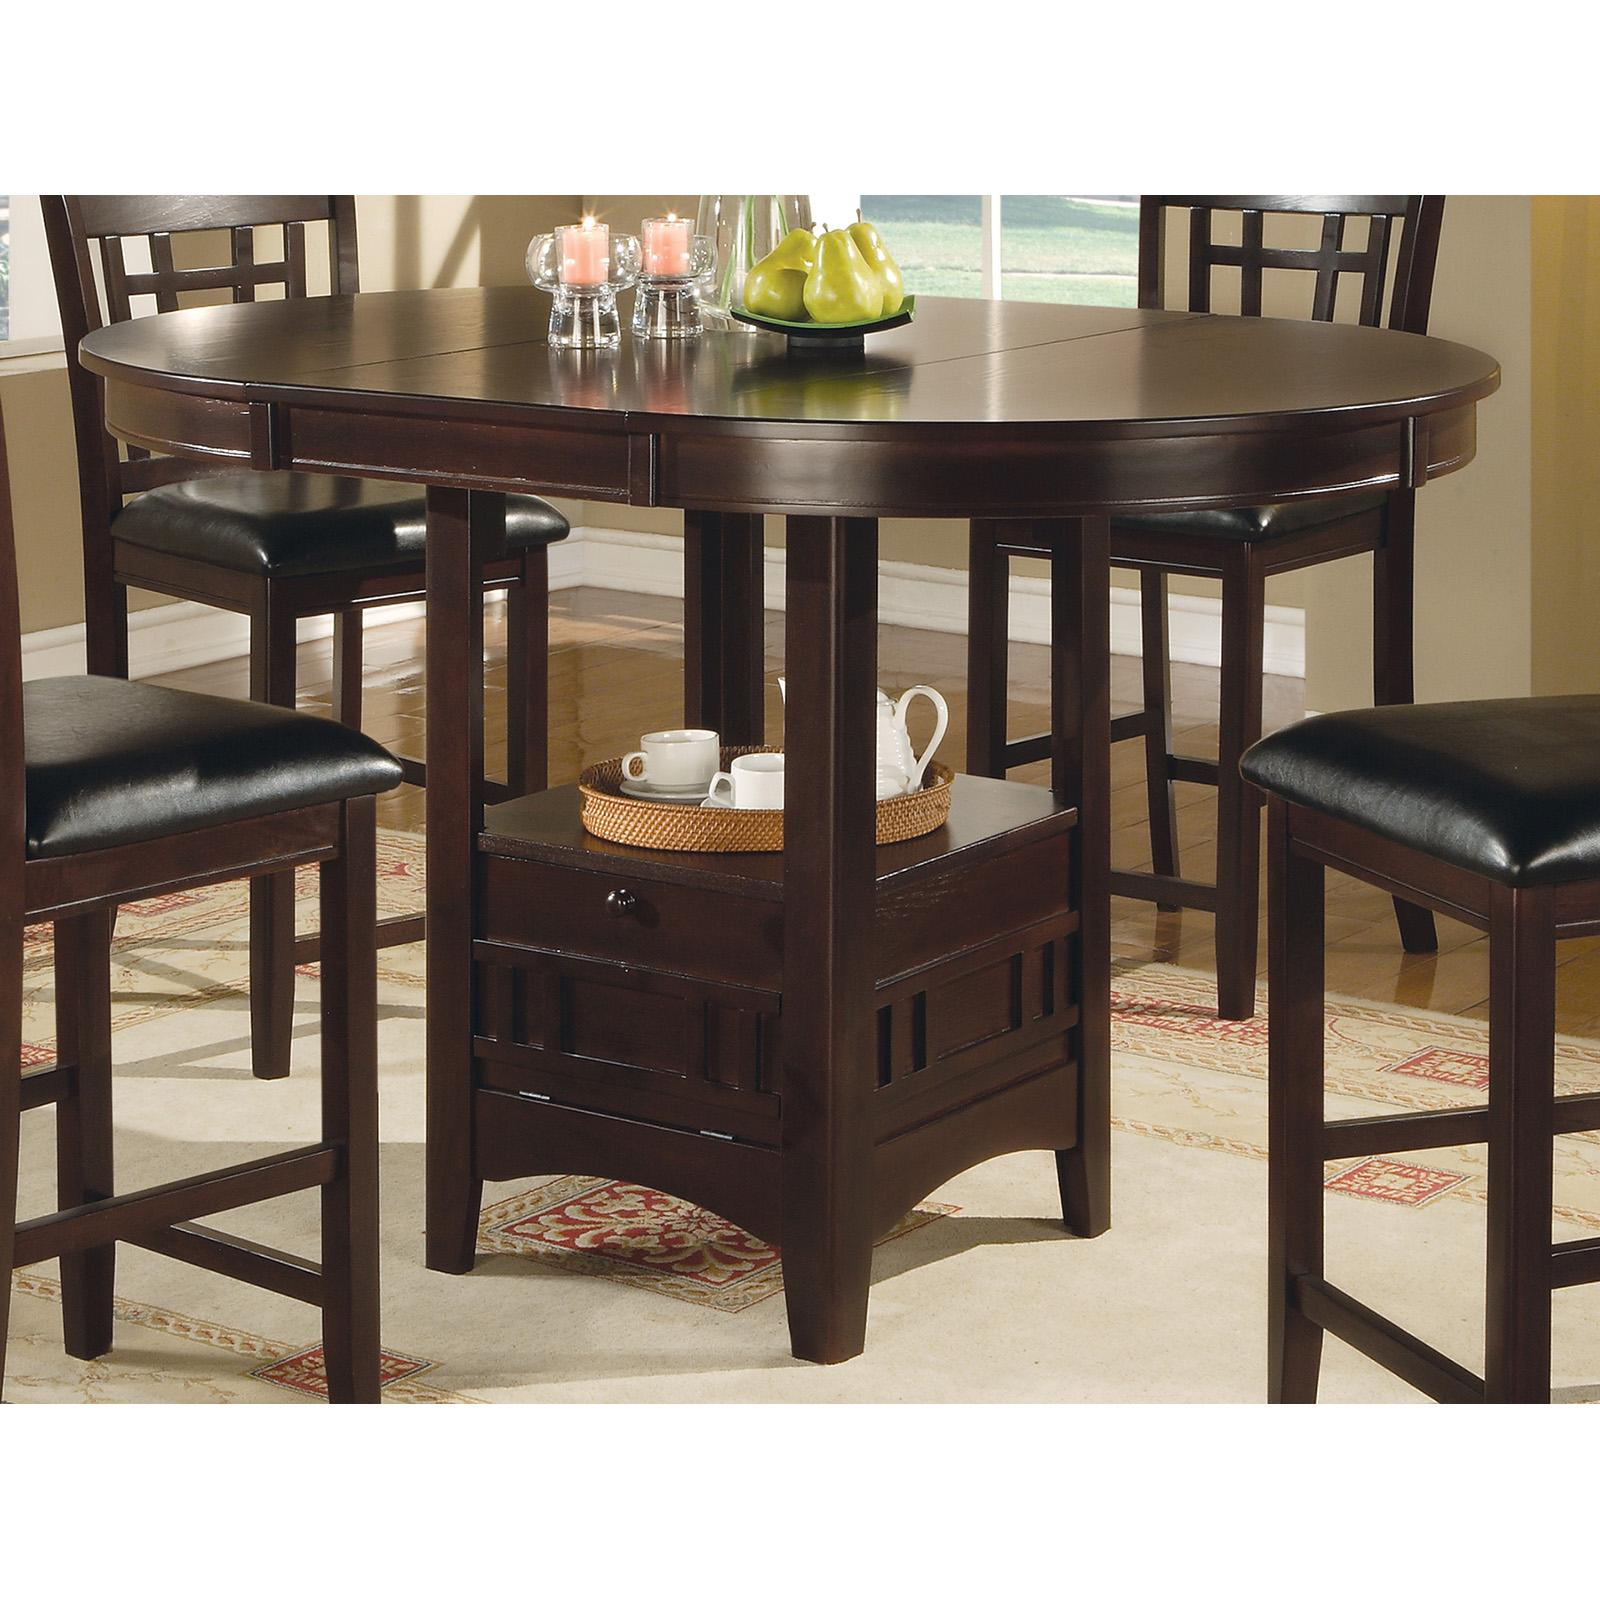 Coaster Furniture Lavon Counter Height Dining Table - 102...